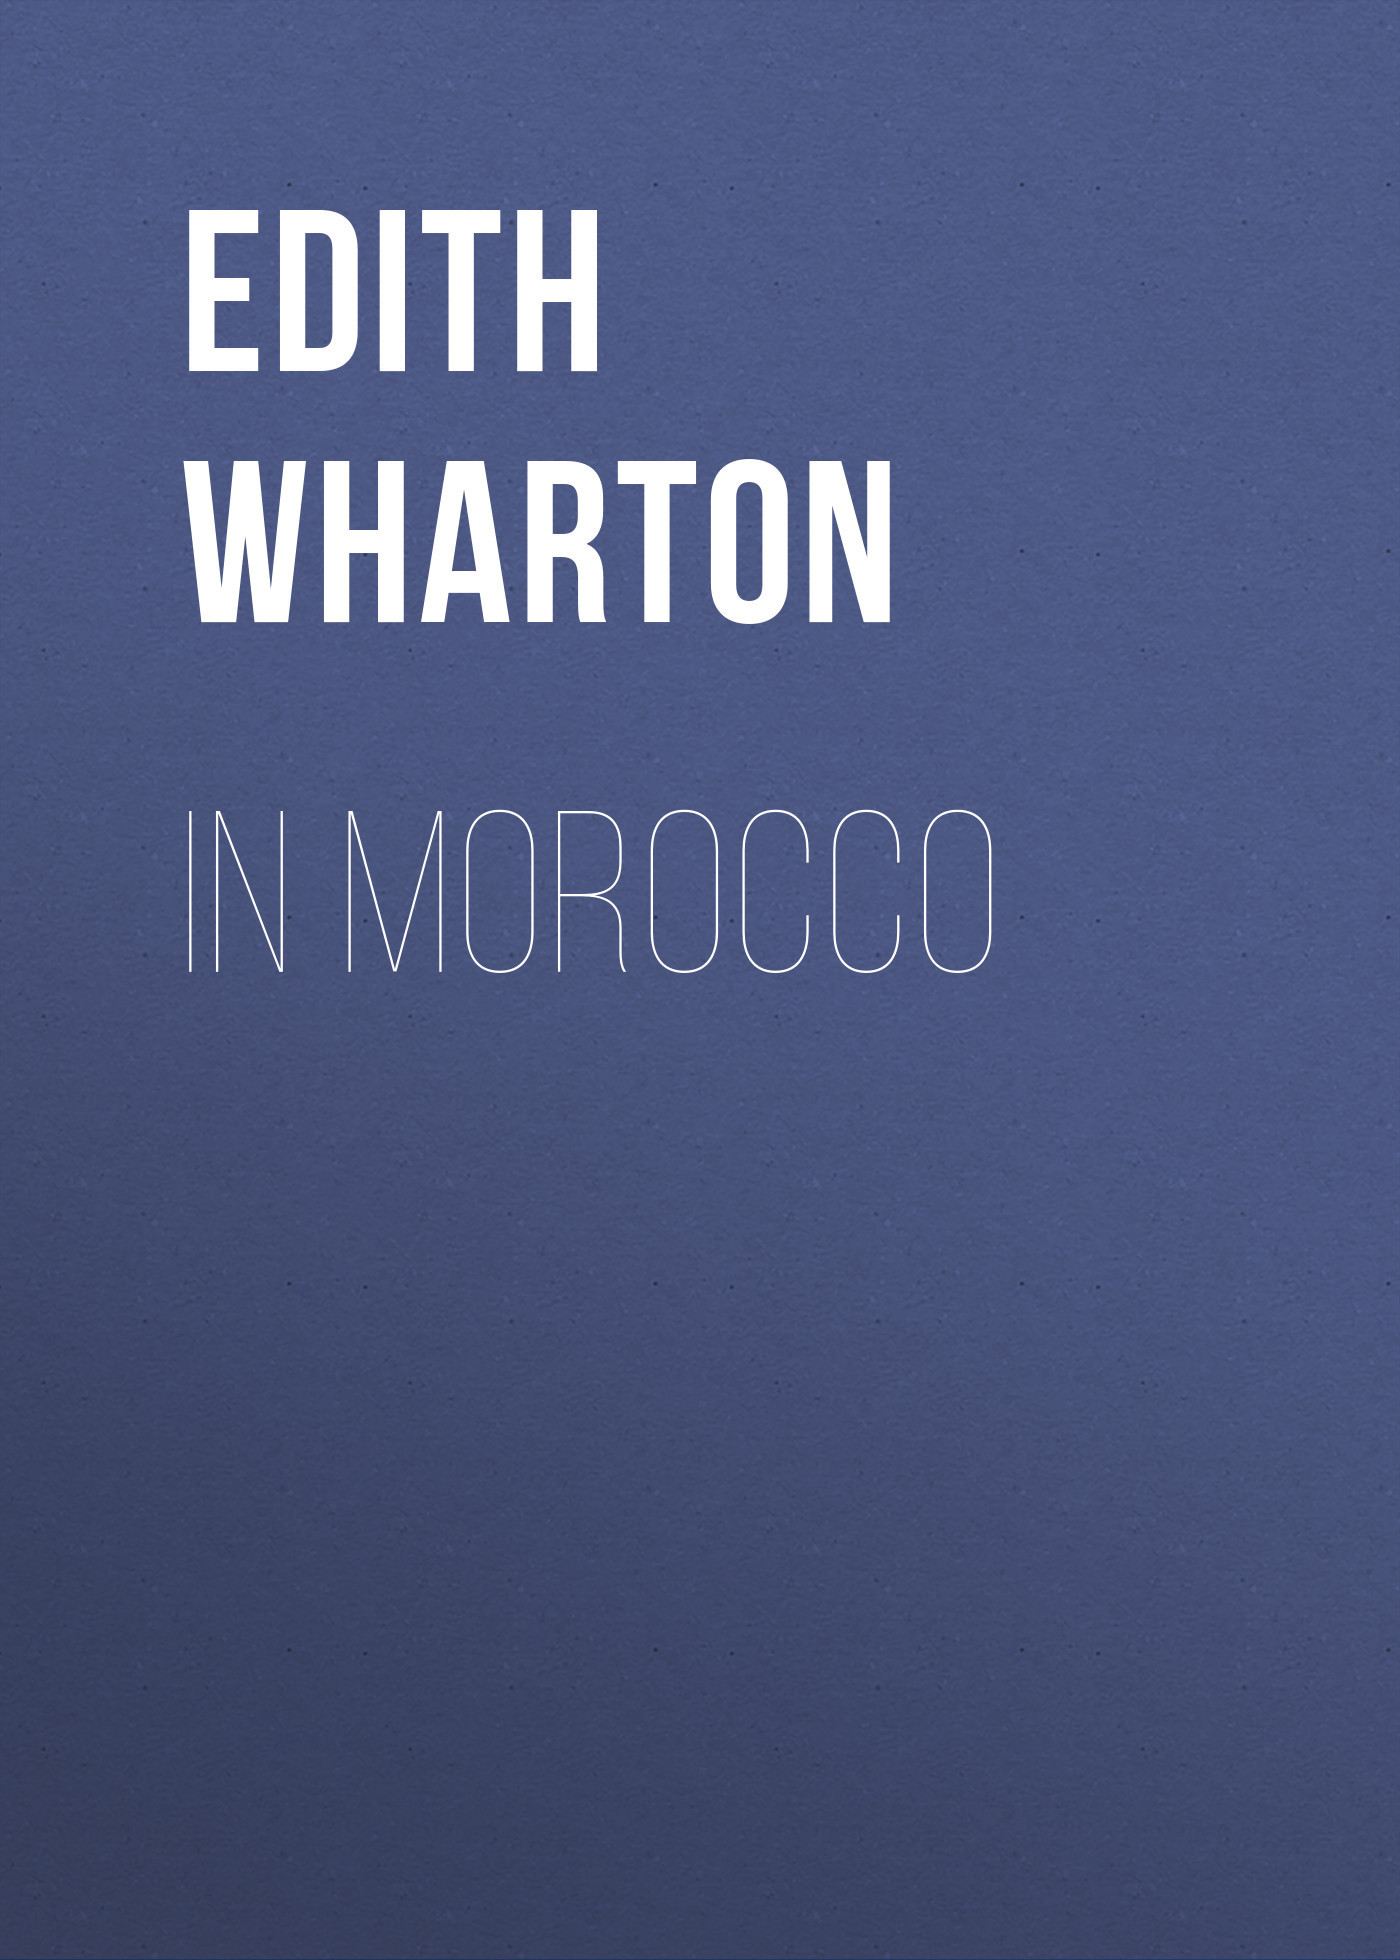 Edith Wharton In Morocco конструктор waveplay fun and education 42 элемента 79 b